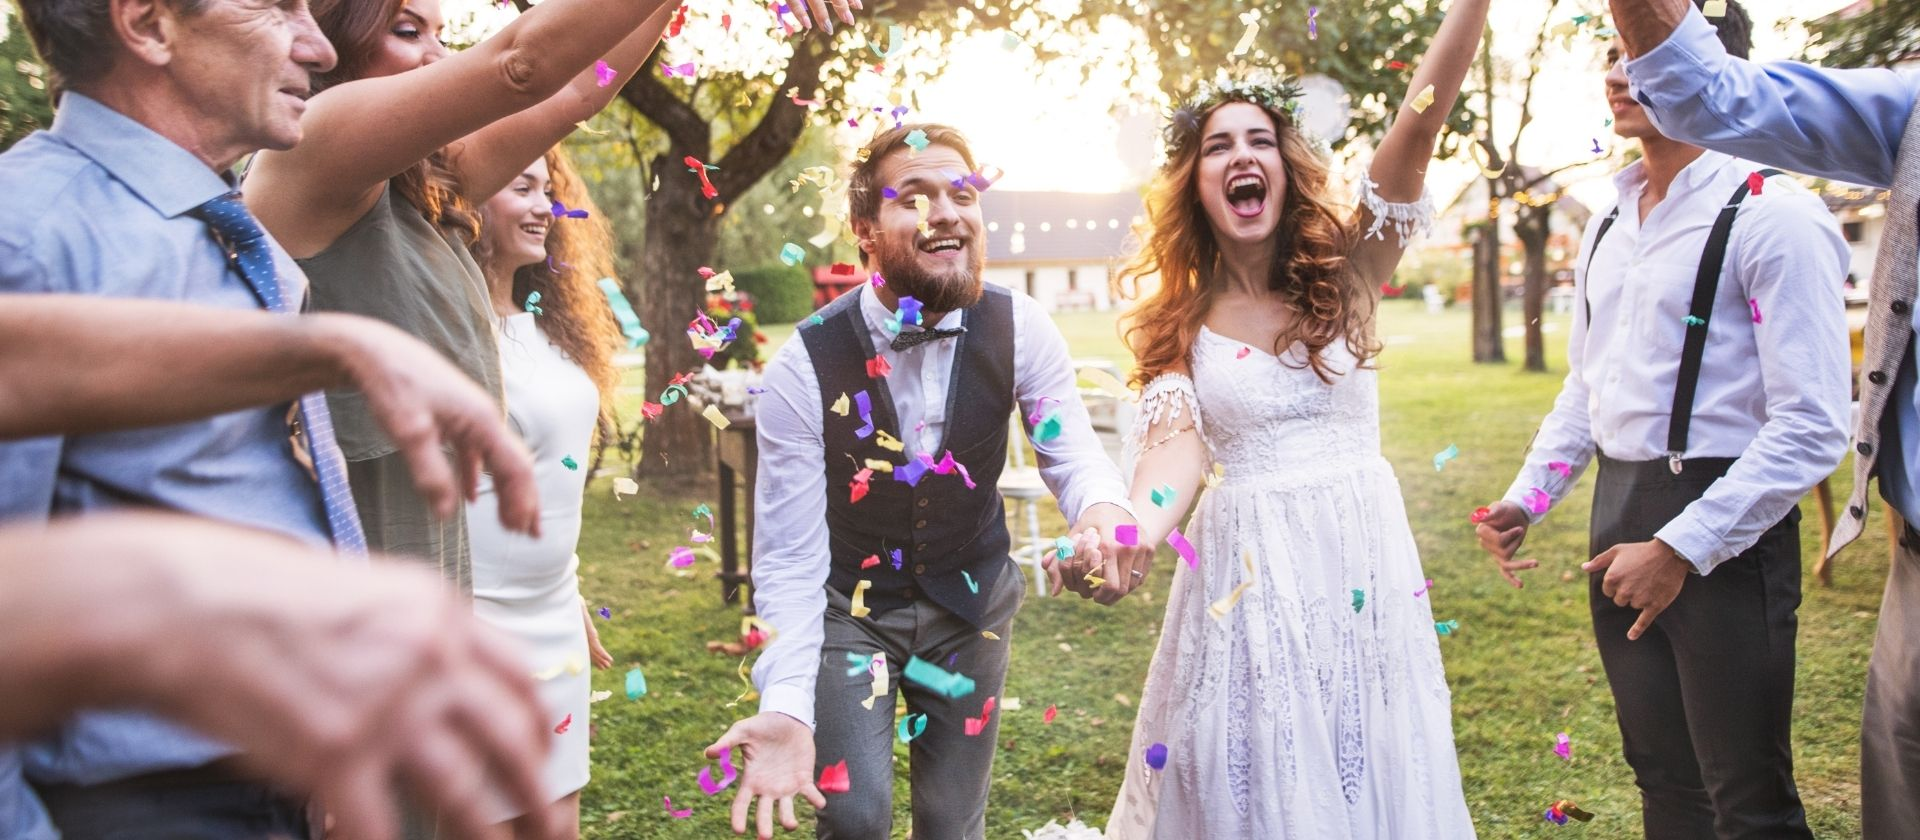 2020 and 2021 Wedding Trends